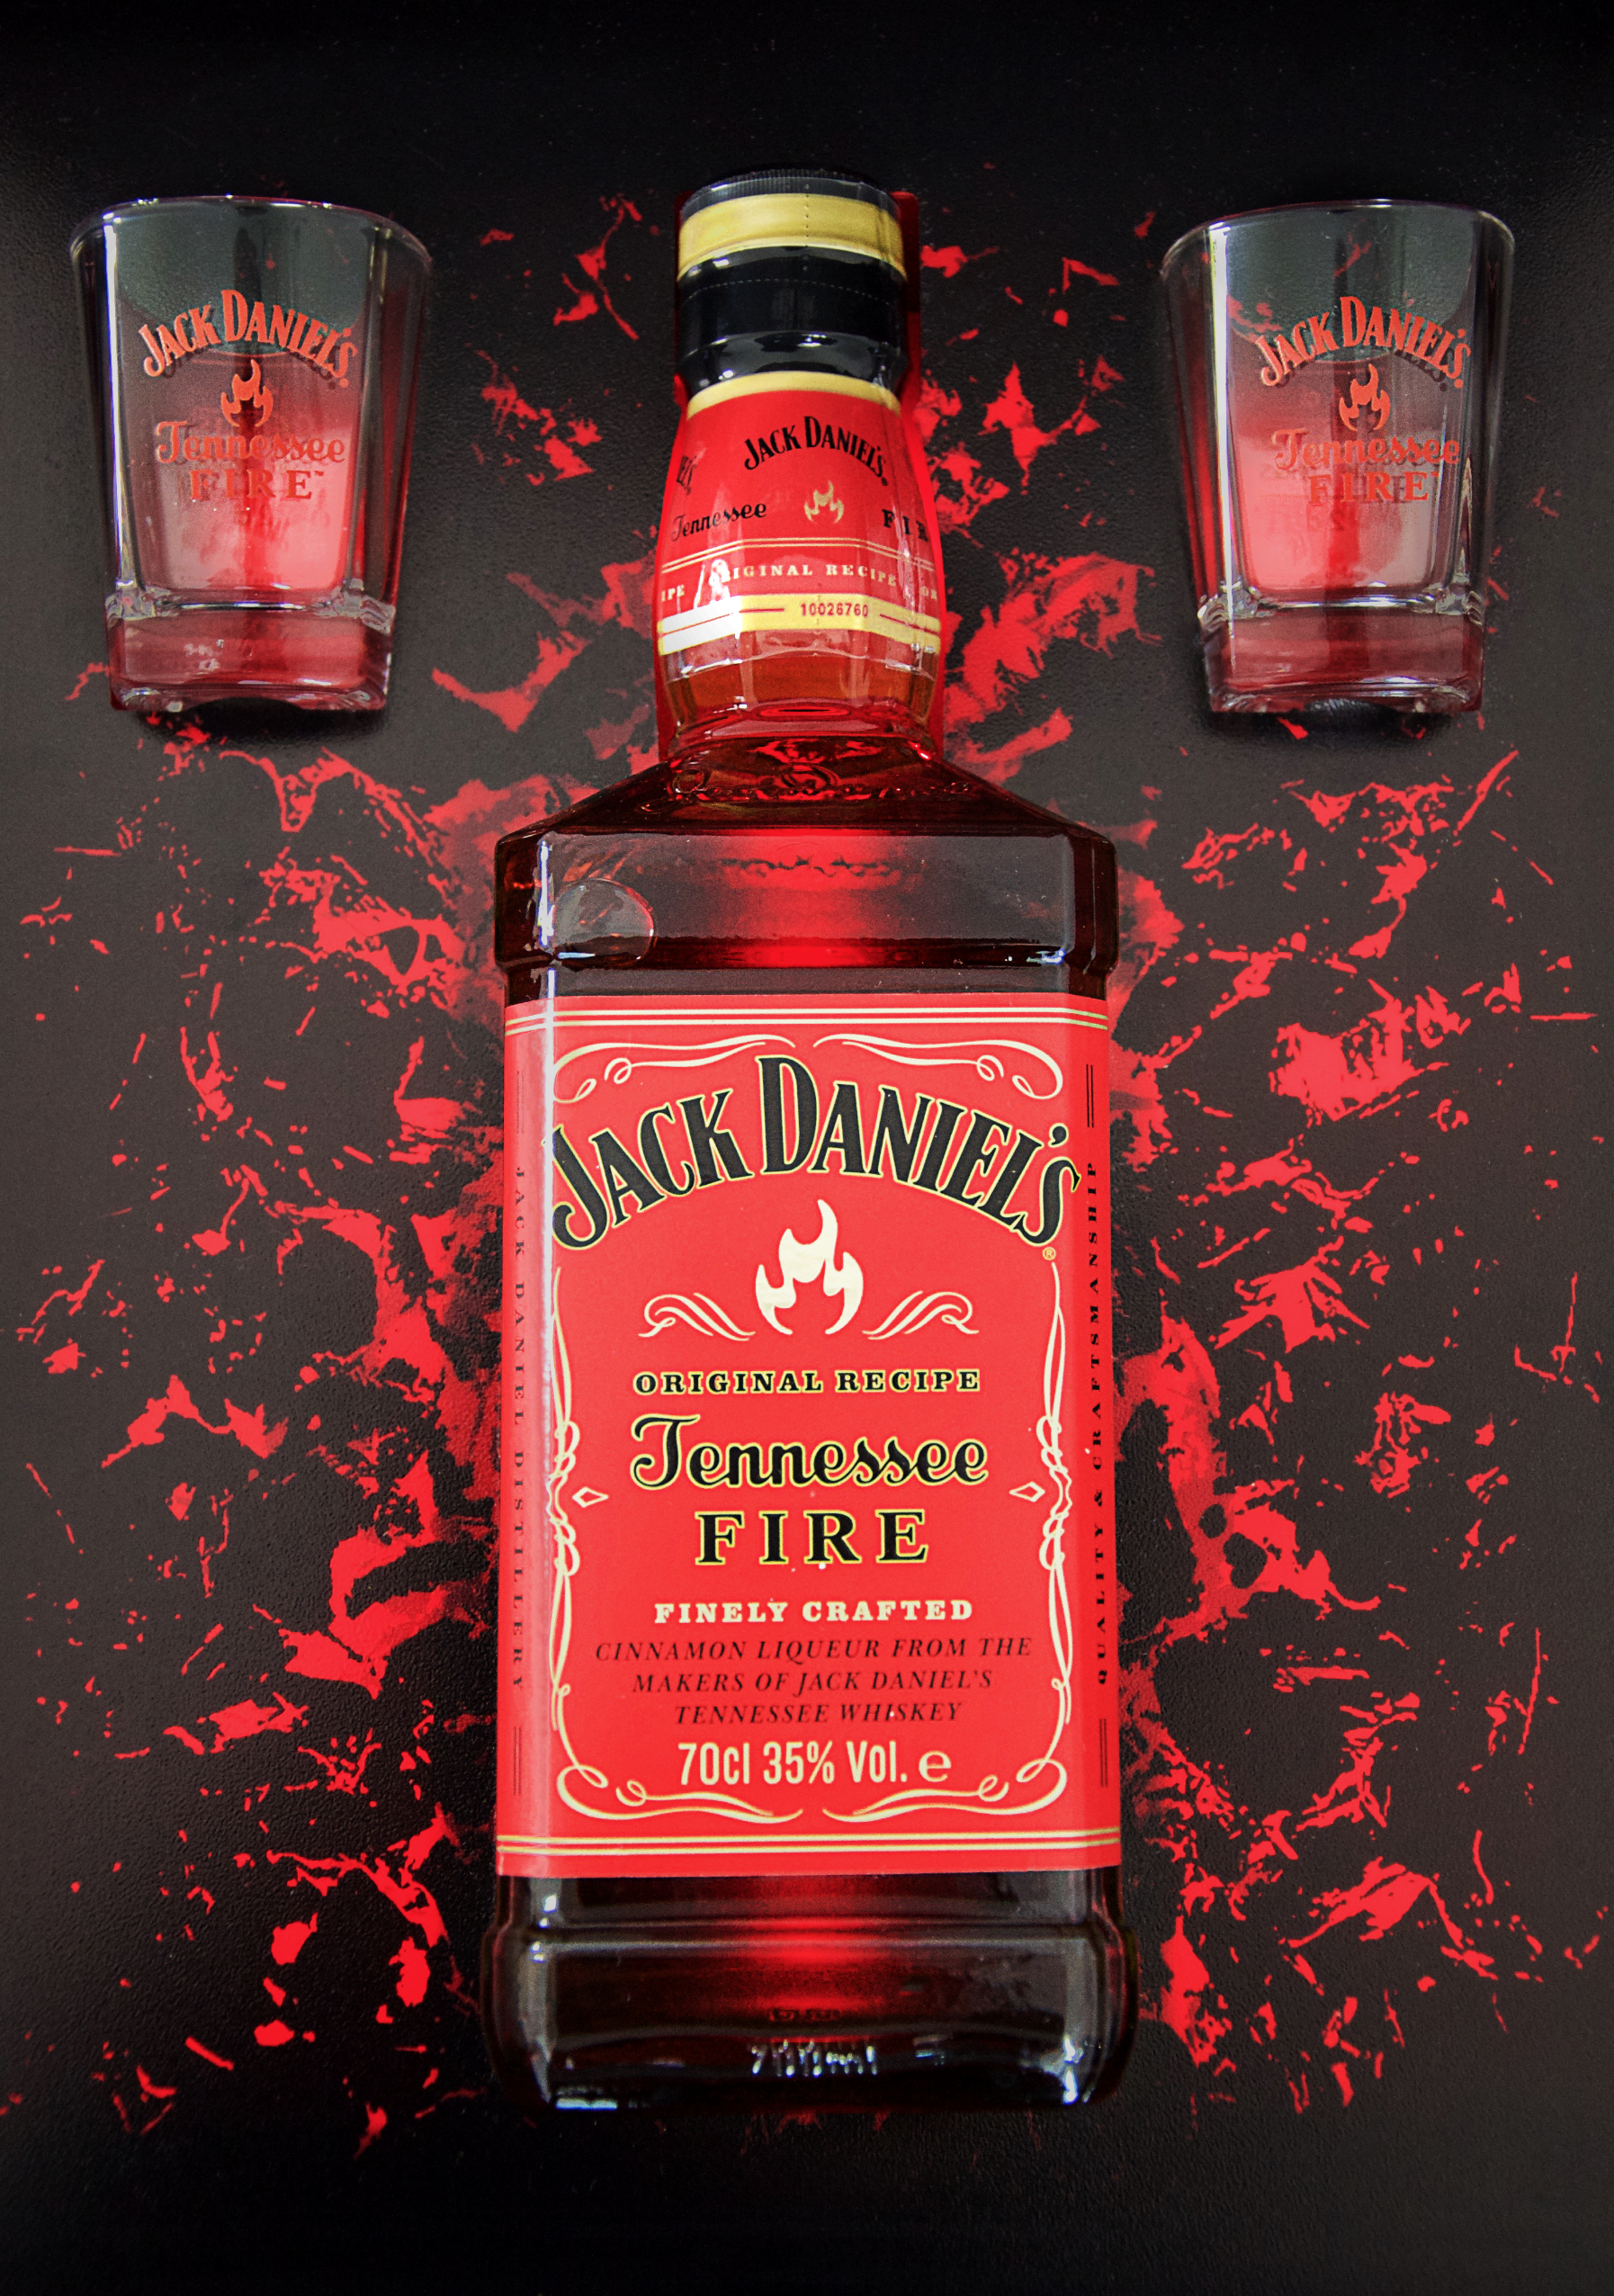 The concept and creation for Jack Daniels Tennessee Fire